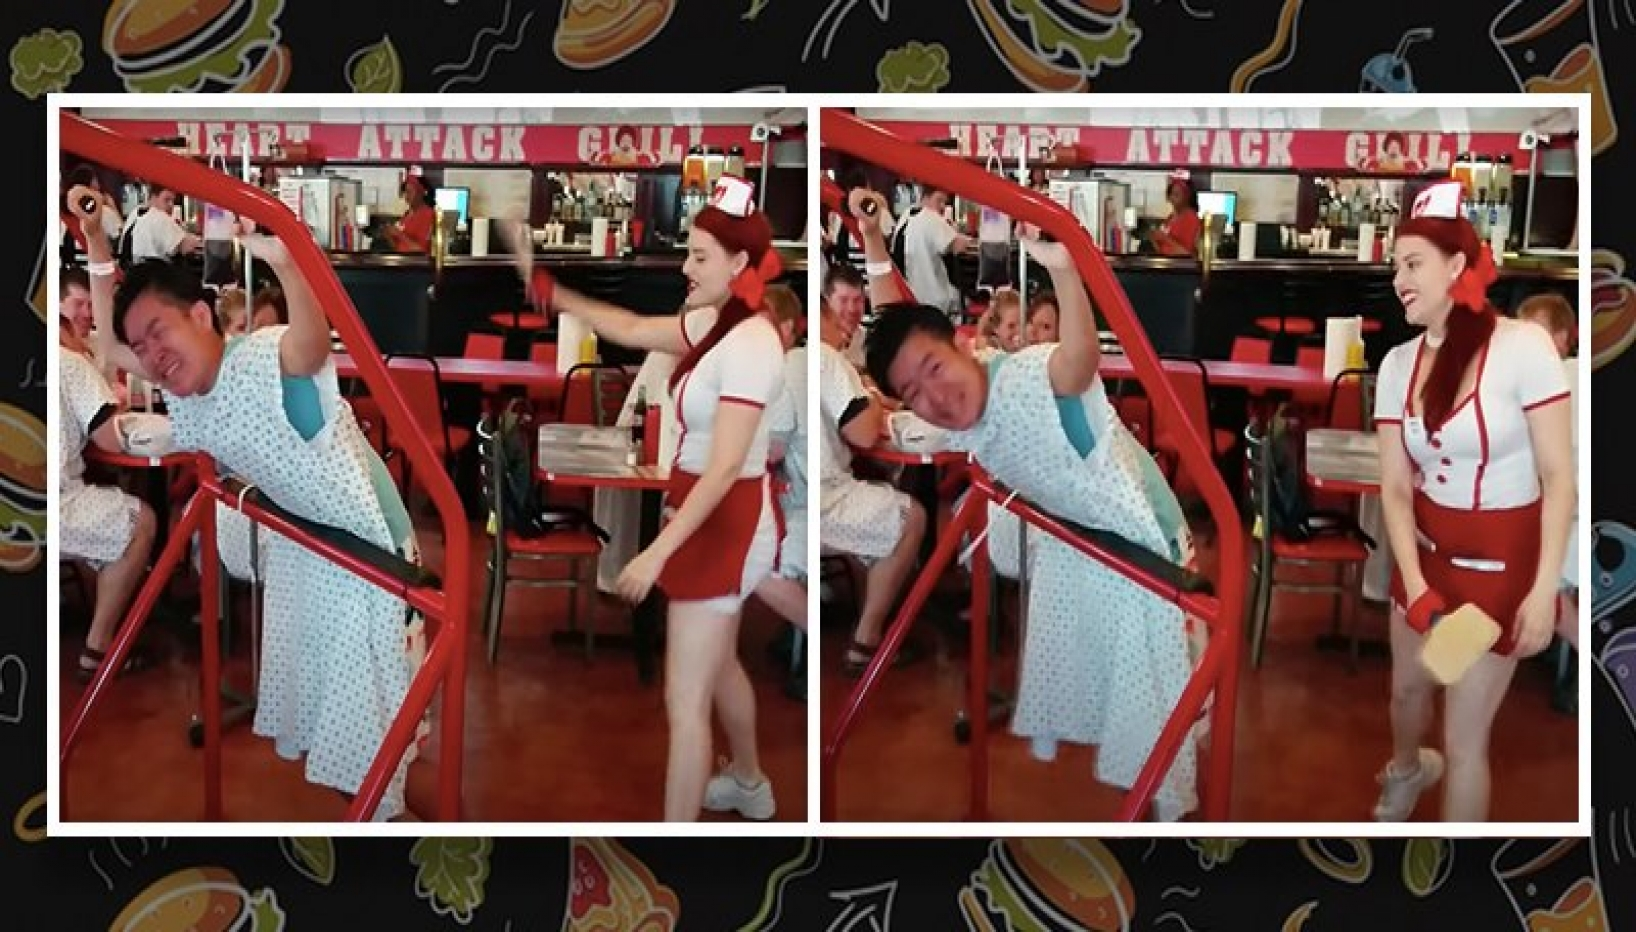 A person getting spanked at heart attack restaurant